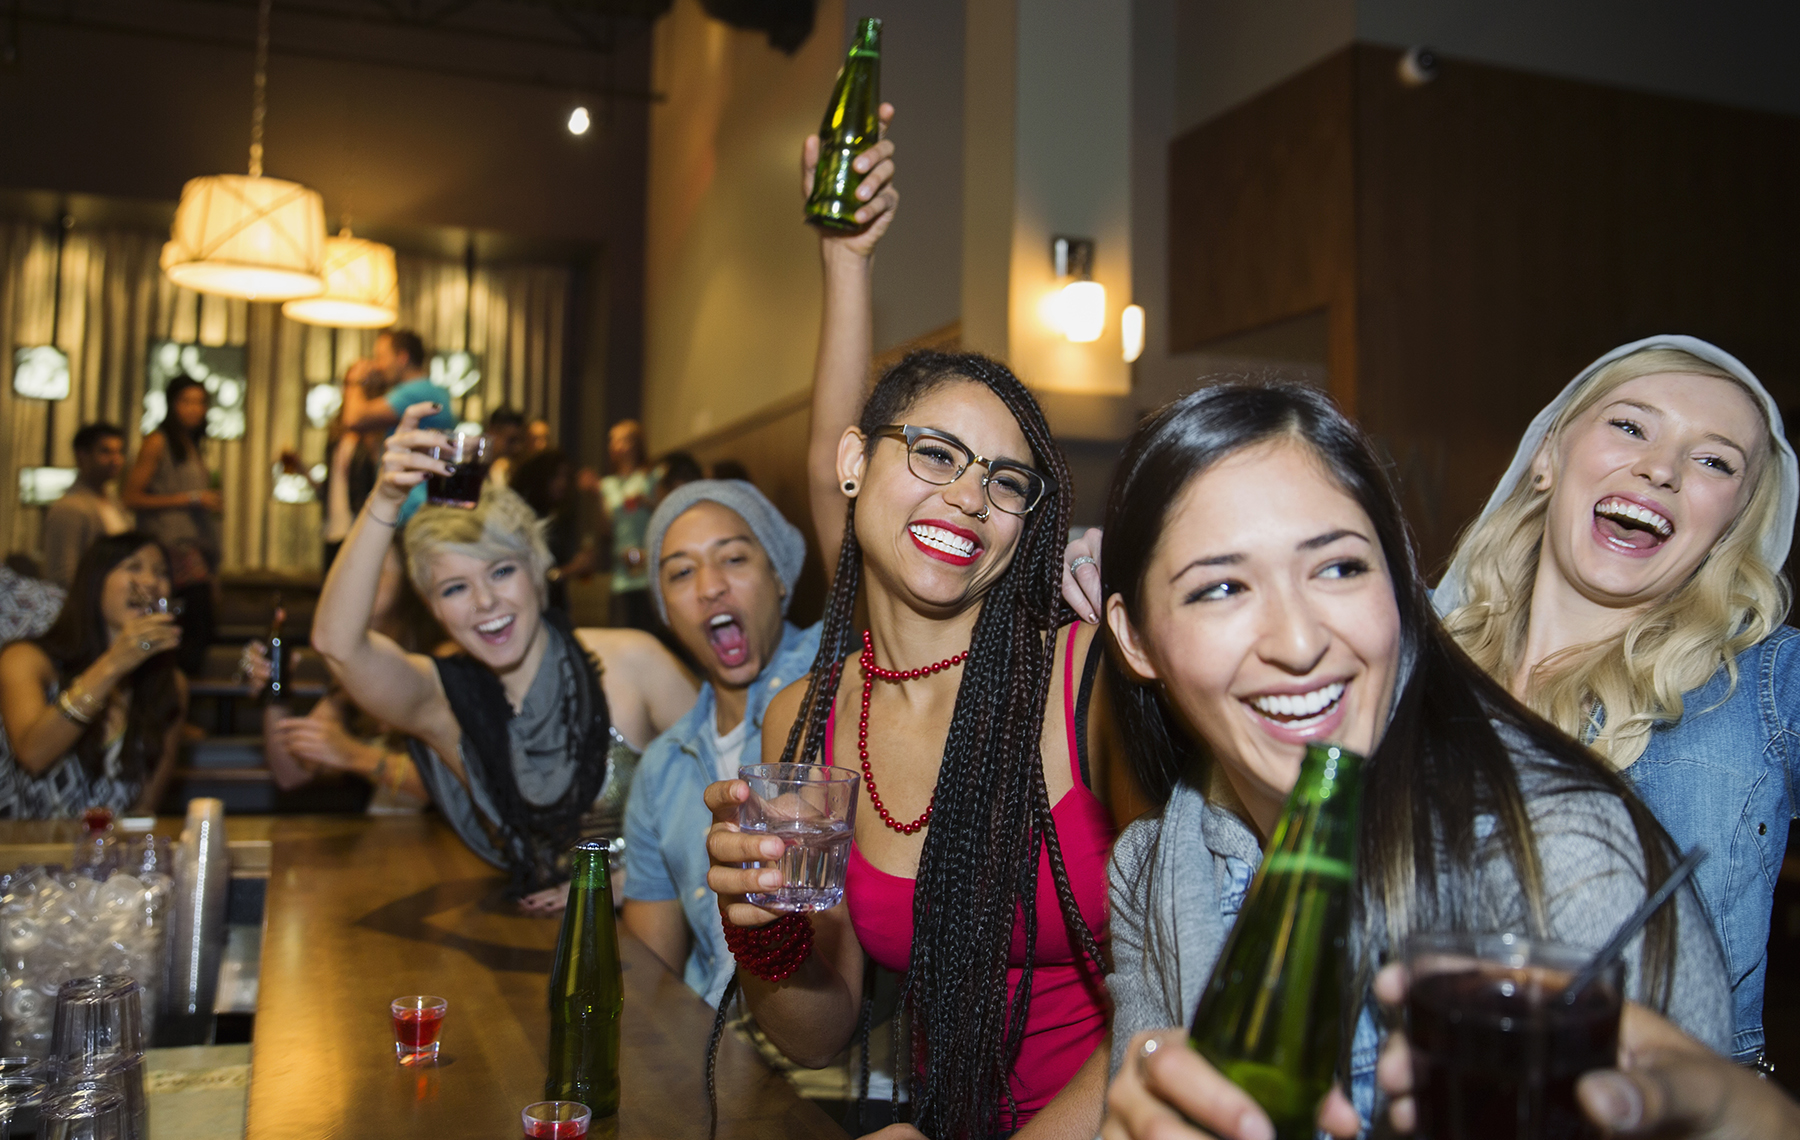 Young people drinking and having fun in a bar